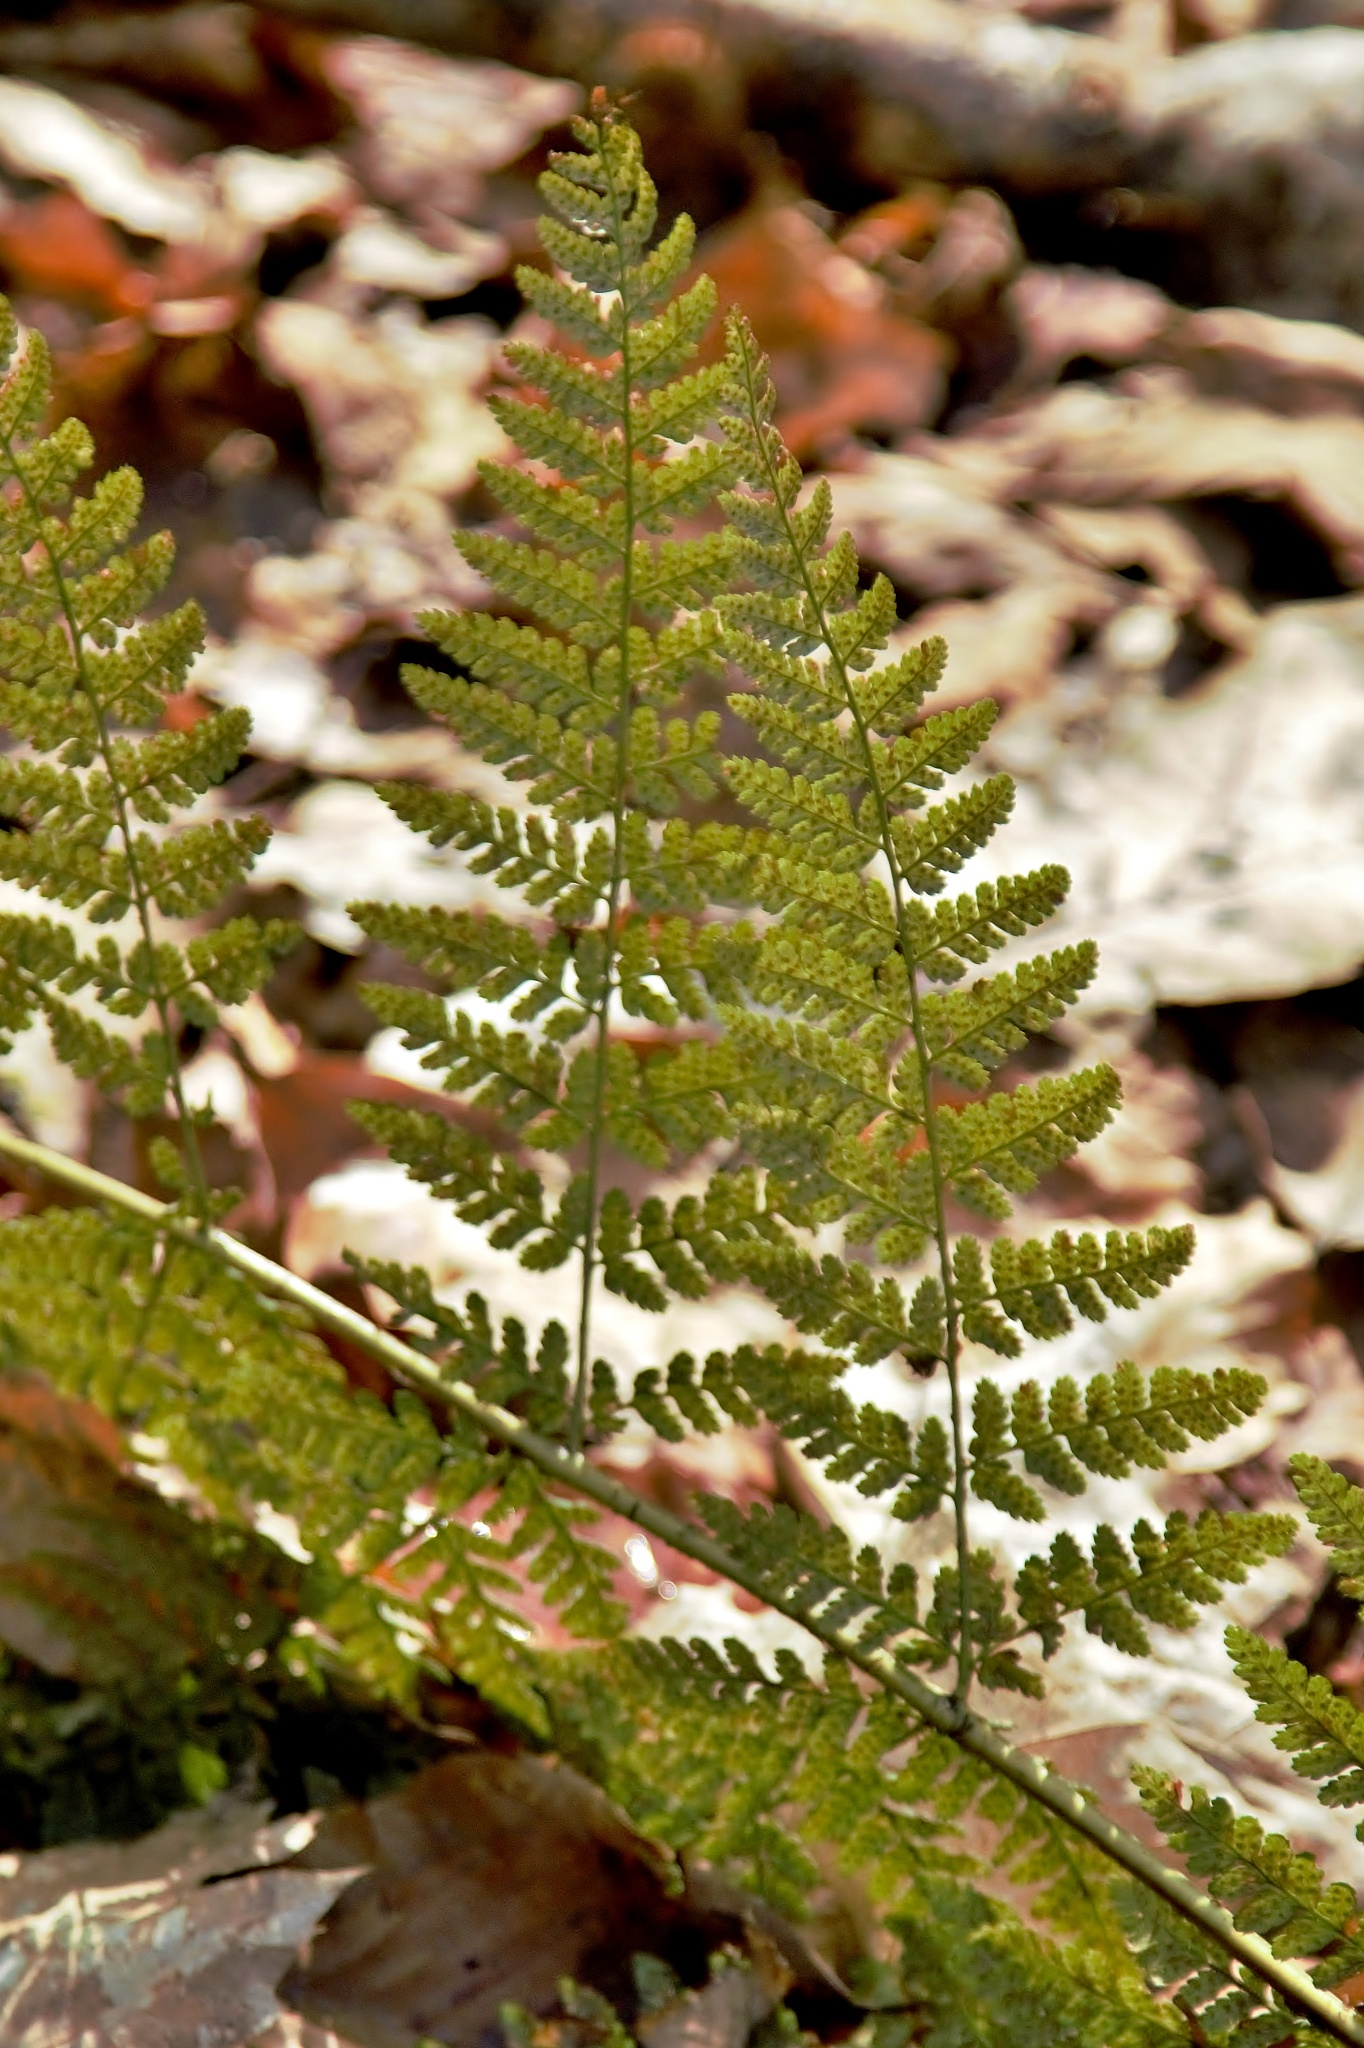 Spring Ferns On Autumn Leaves - Colour by paul.hosker